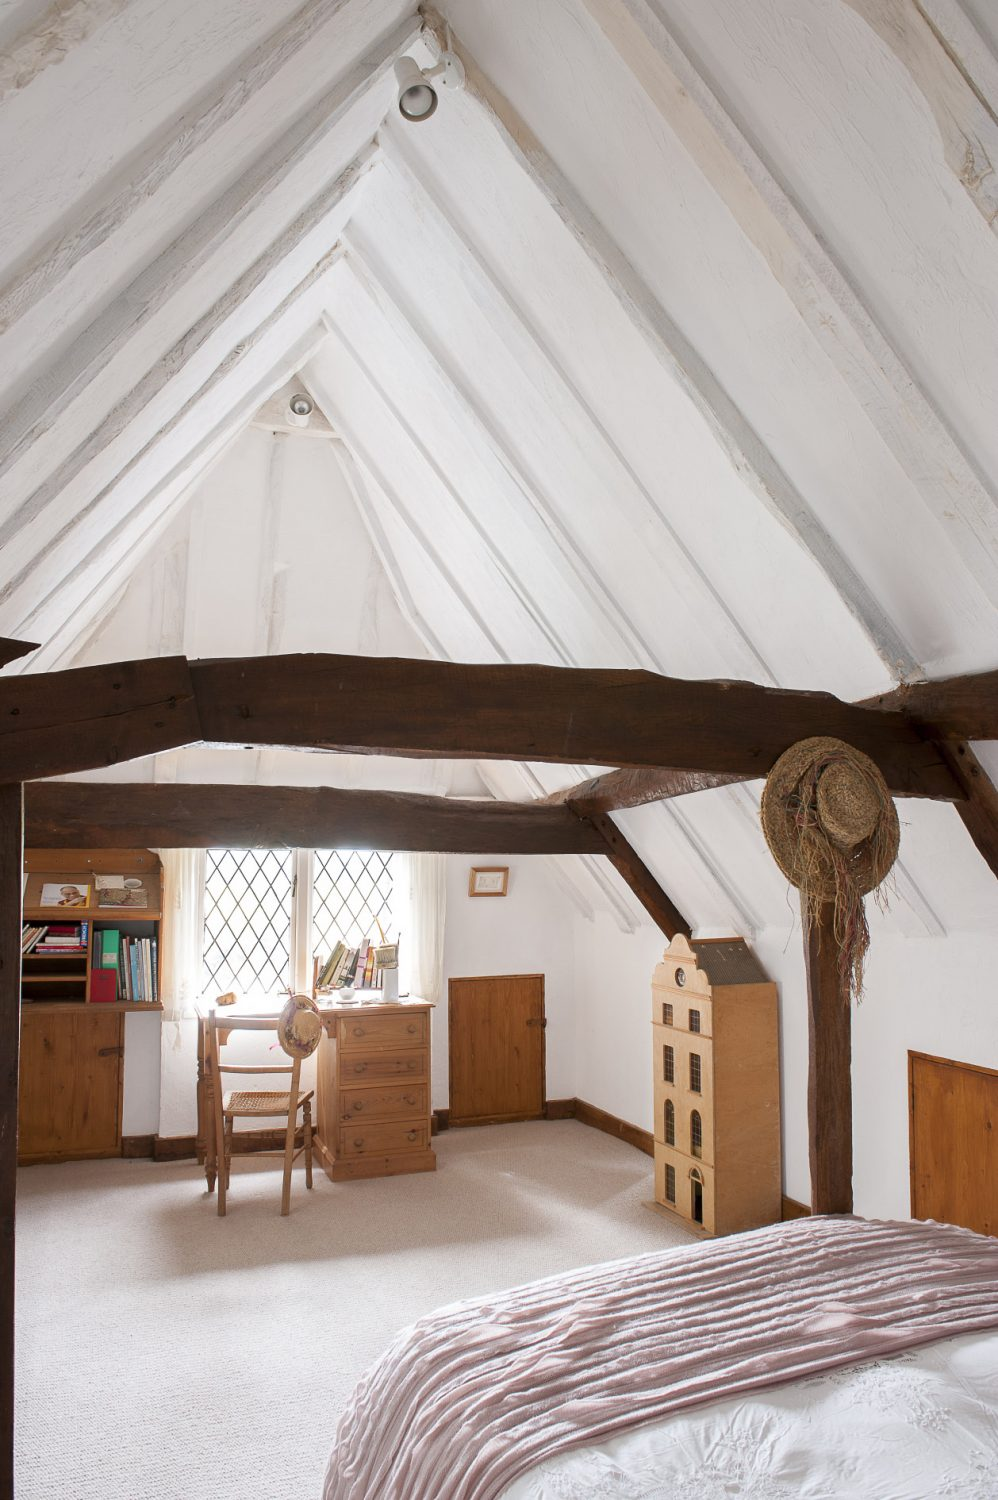 Two of the children's beamed bedrooms